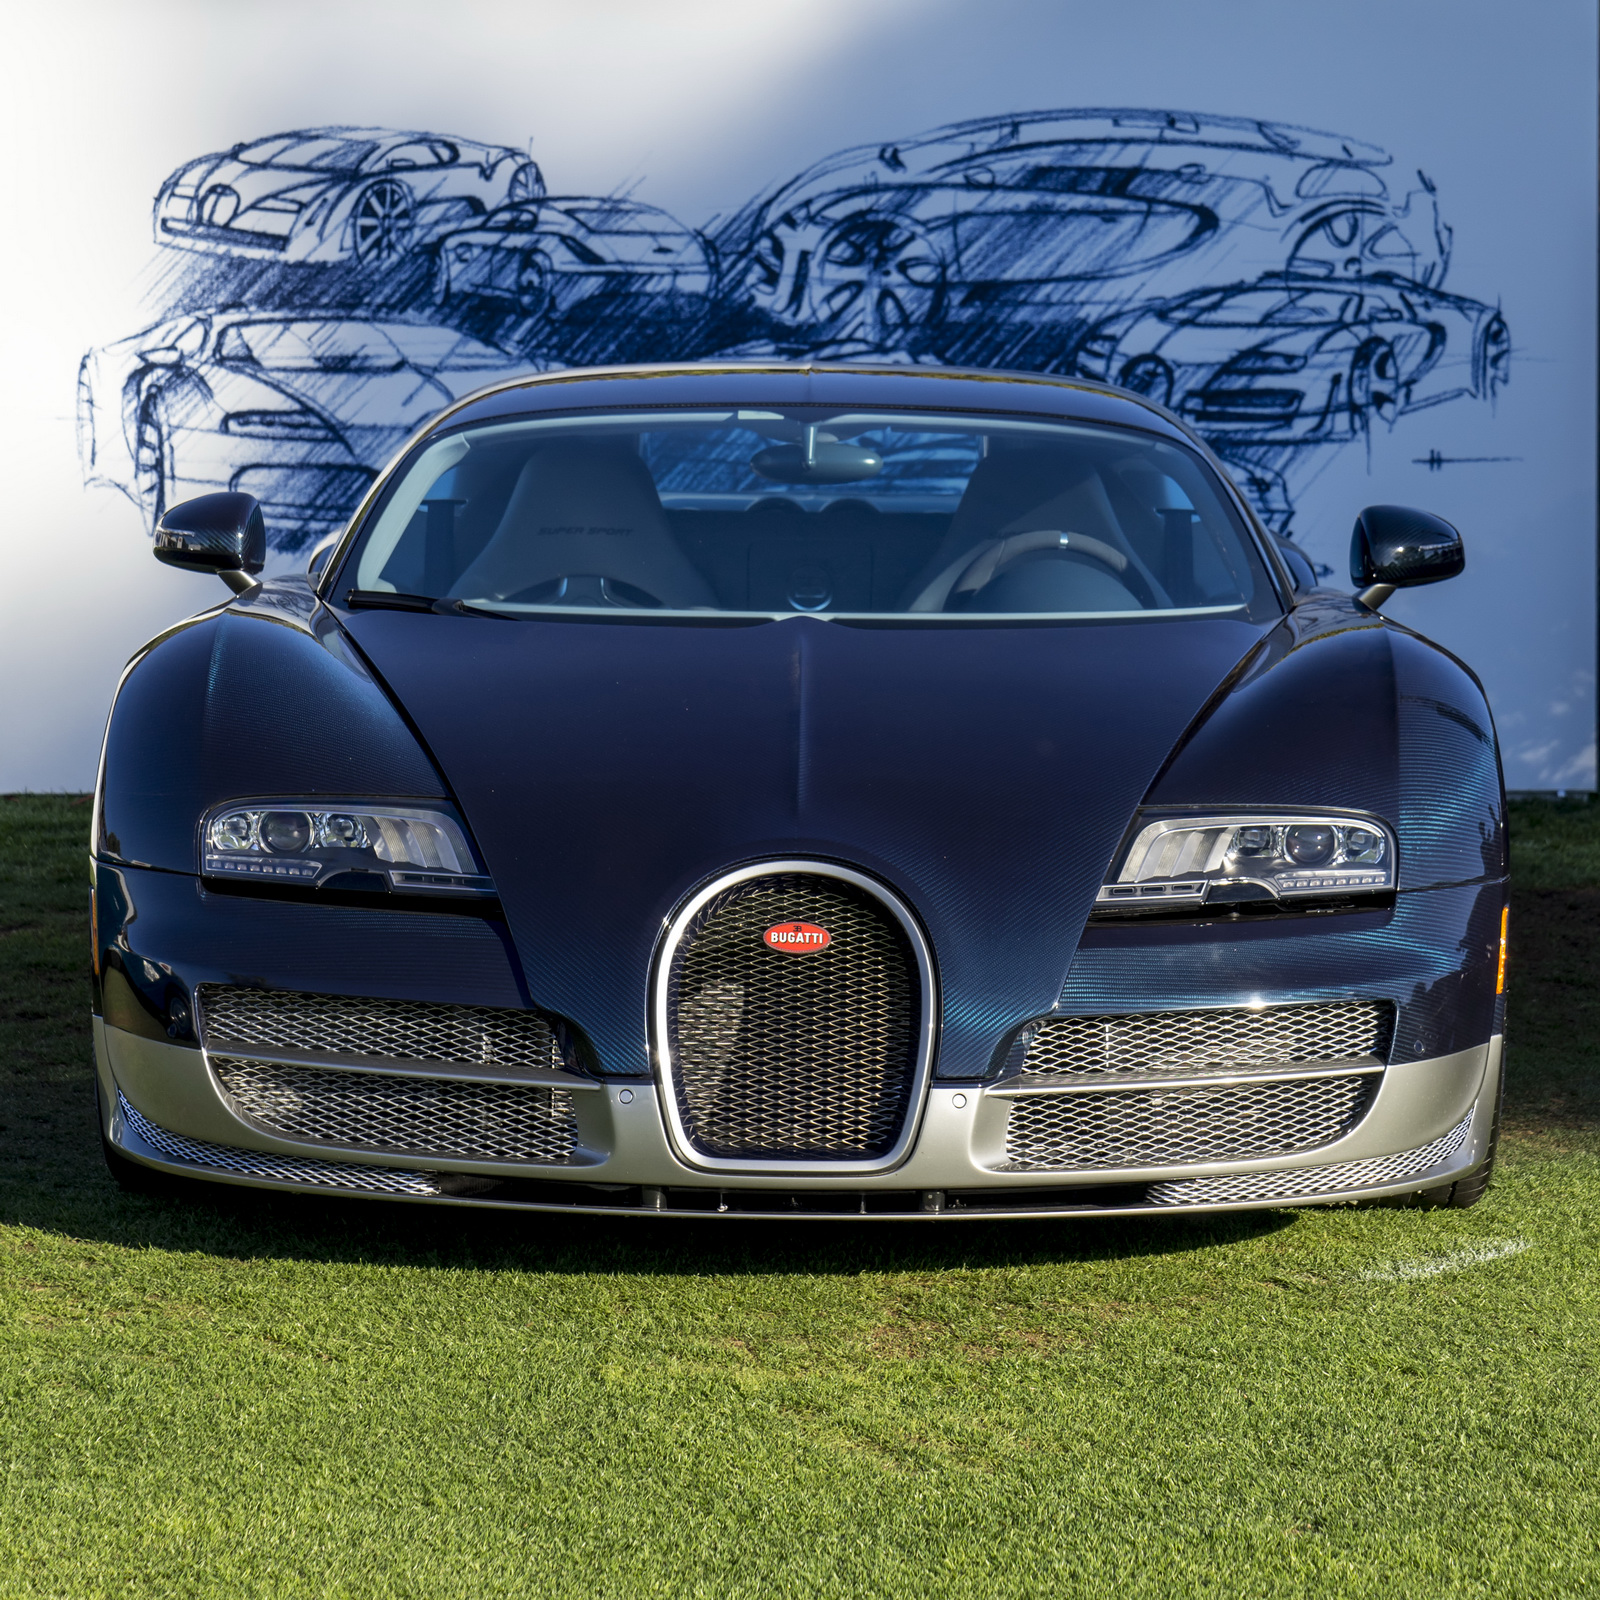 Bugatti Veyron Grand Sport 16 4 Open Top: Bugatti Brings Legendary Classics And Veyron 16.4 Super